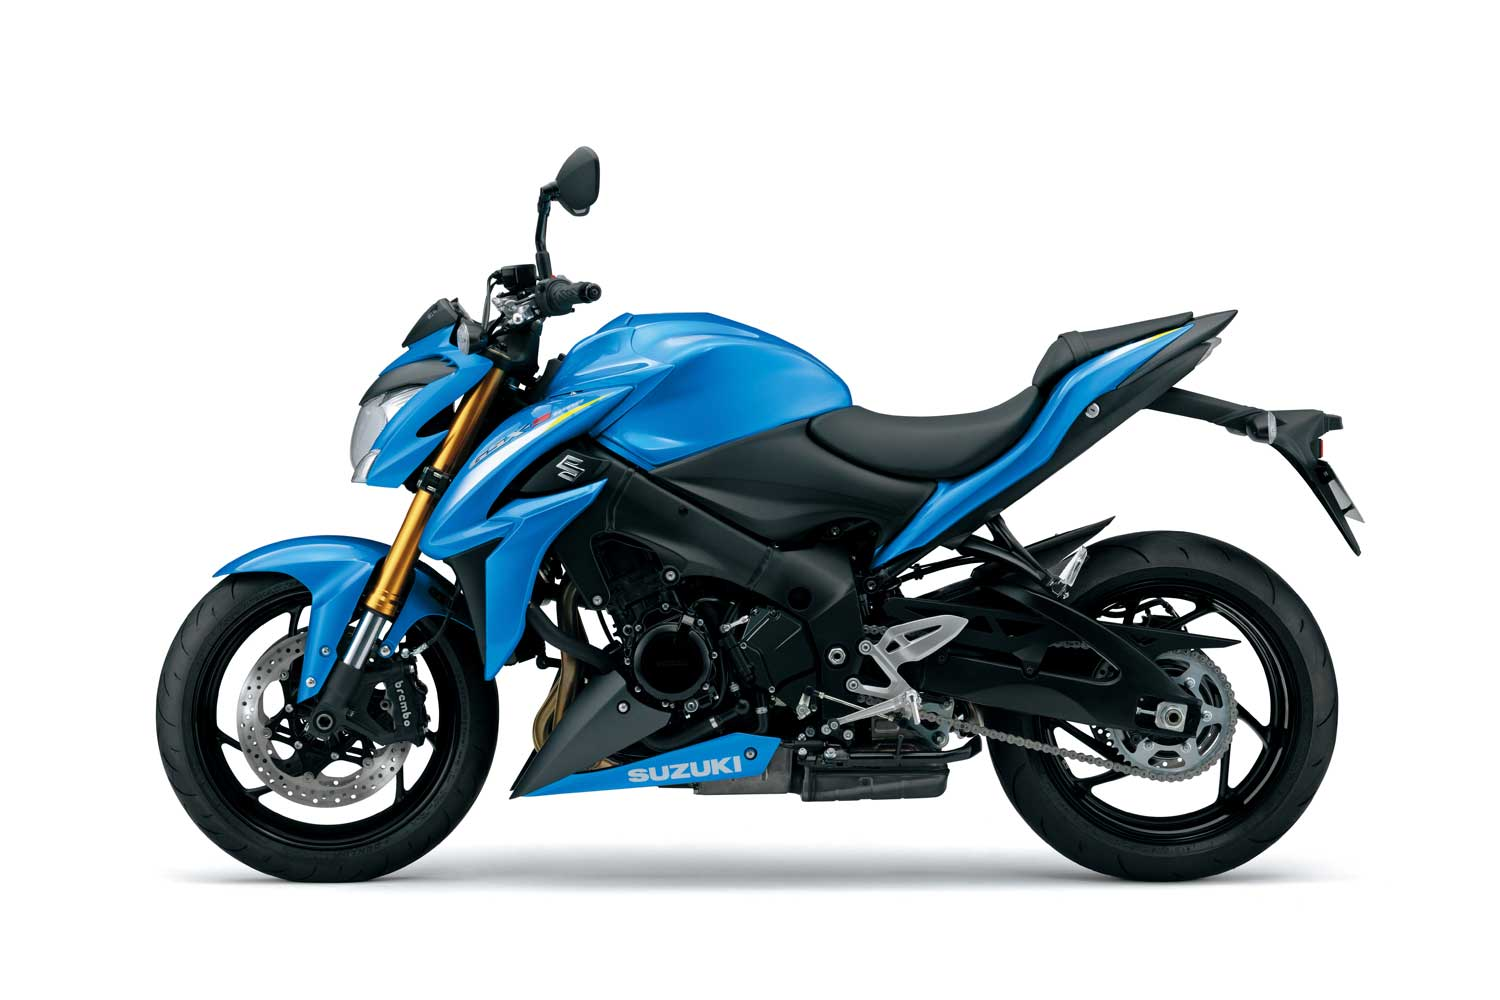 Suzuki Videos Whet Your Appetite For The Upcoming Launch